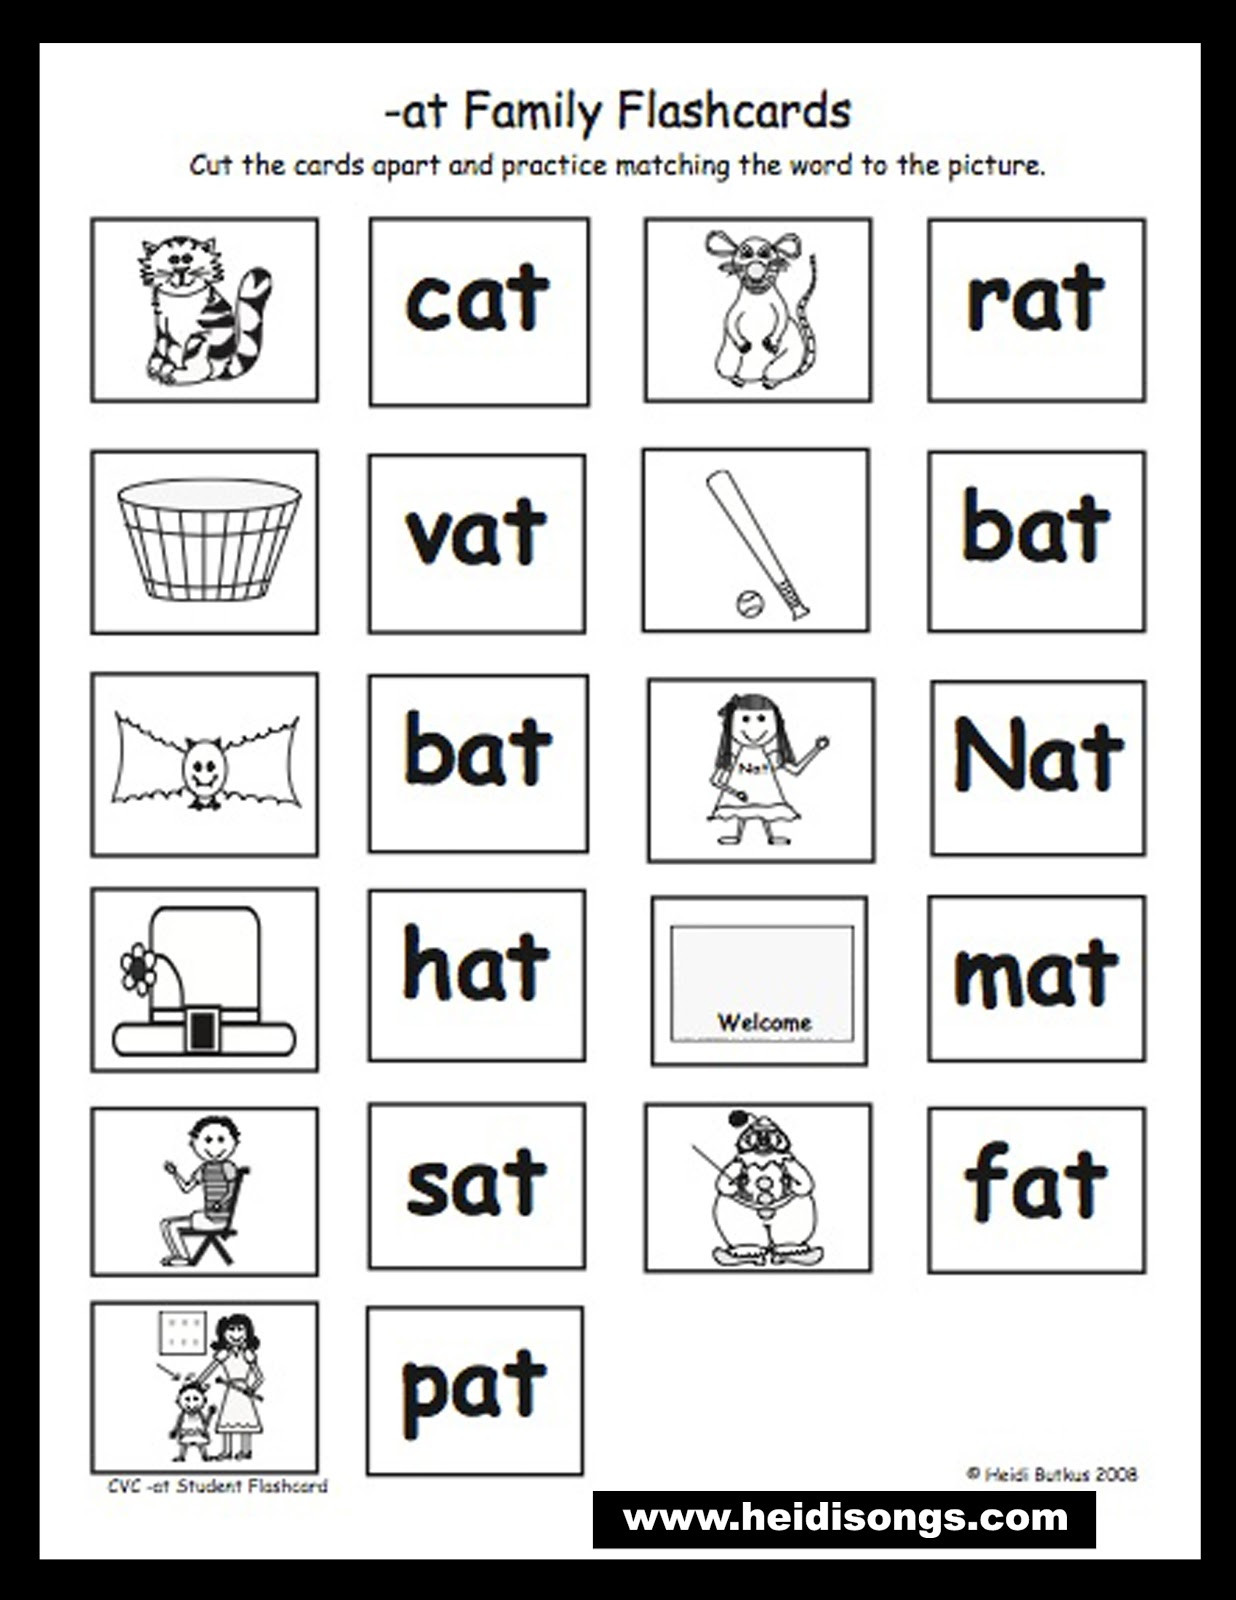 Cvc Worksheets for First Grade Cvc Worksheet New 946 Free Printable Cvc Worksheets for